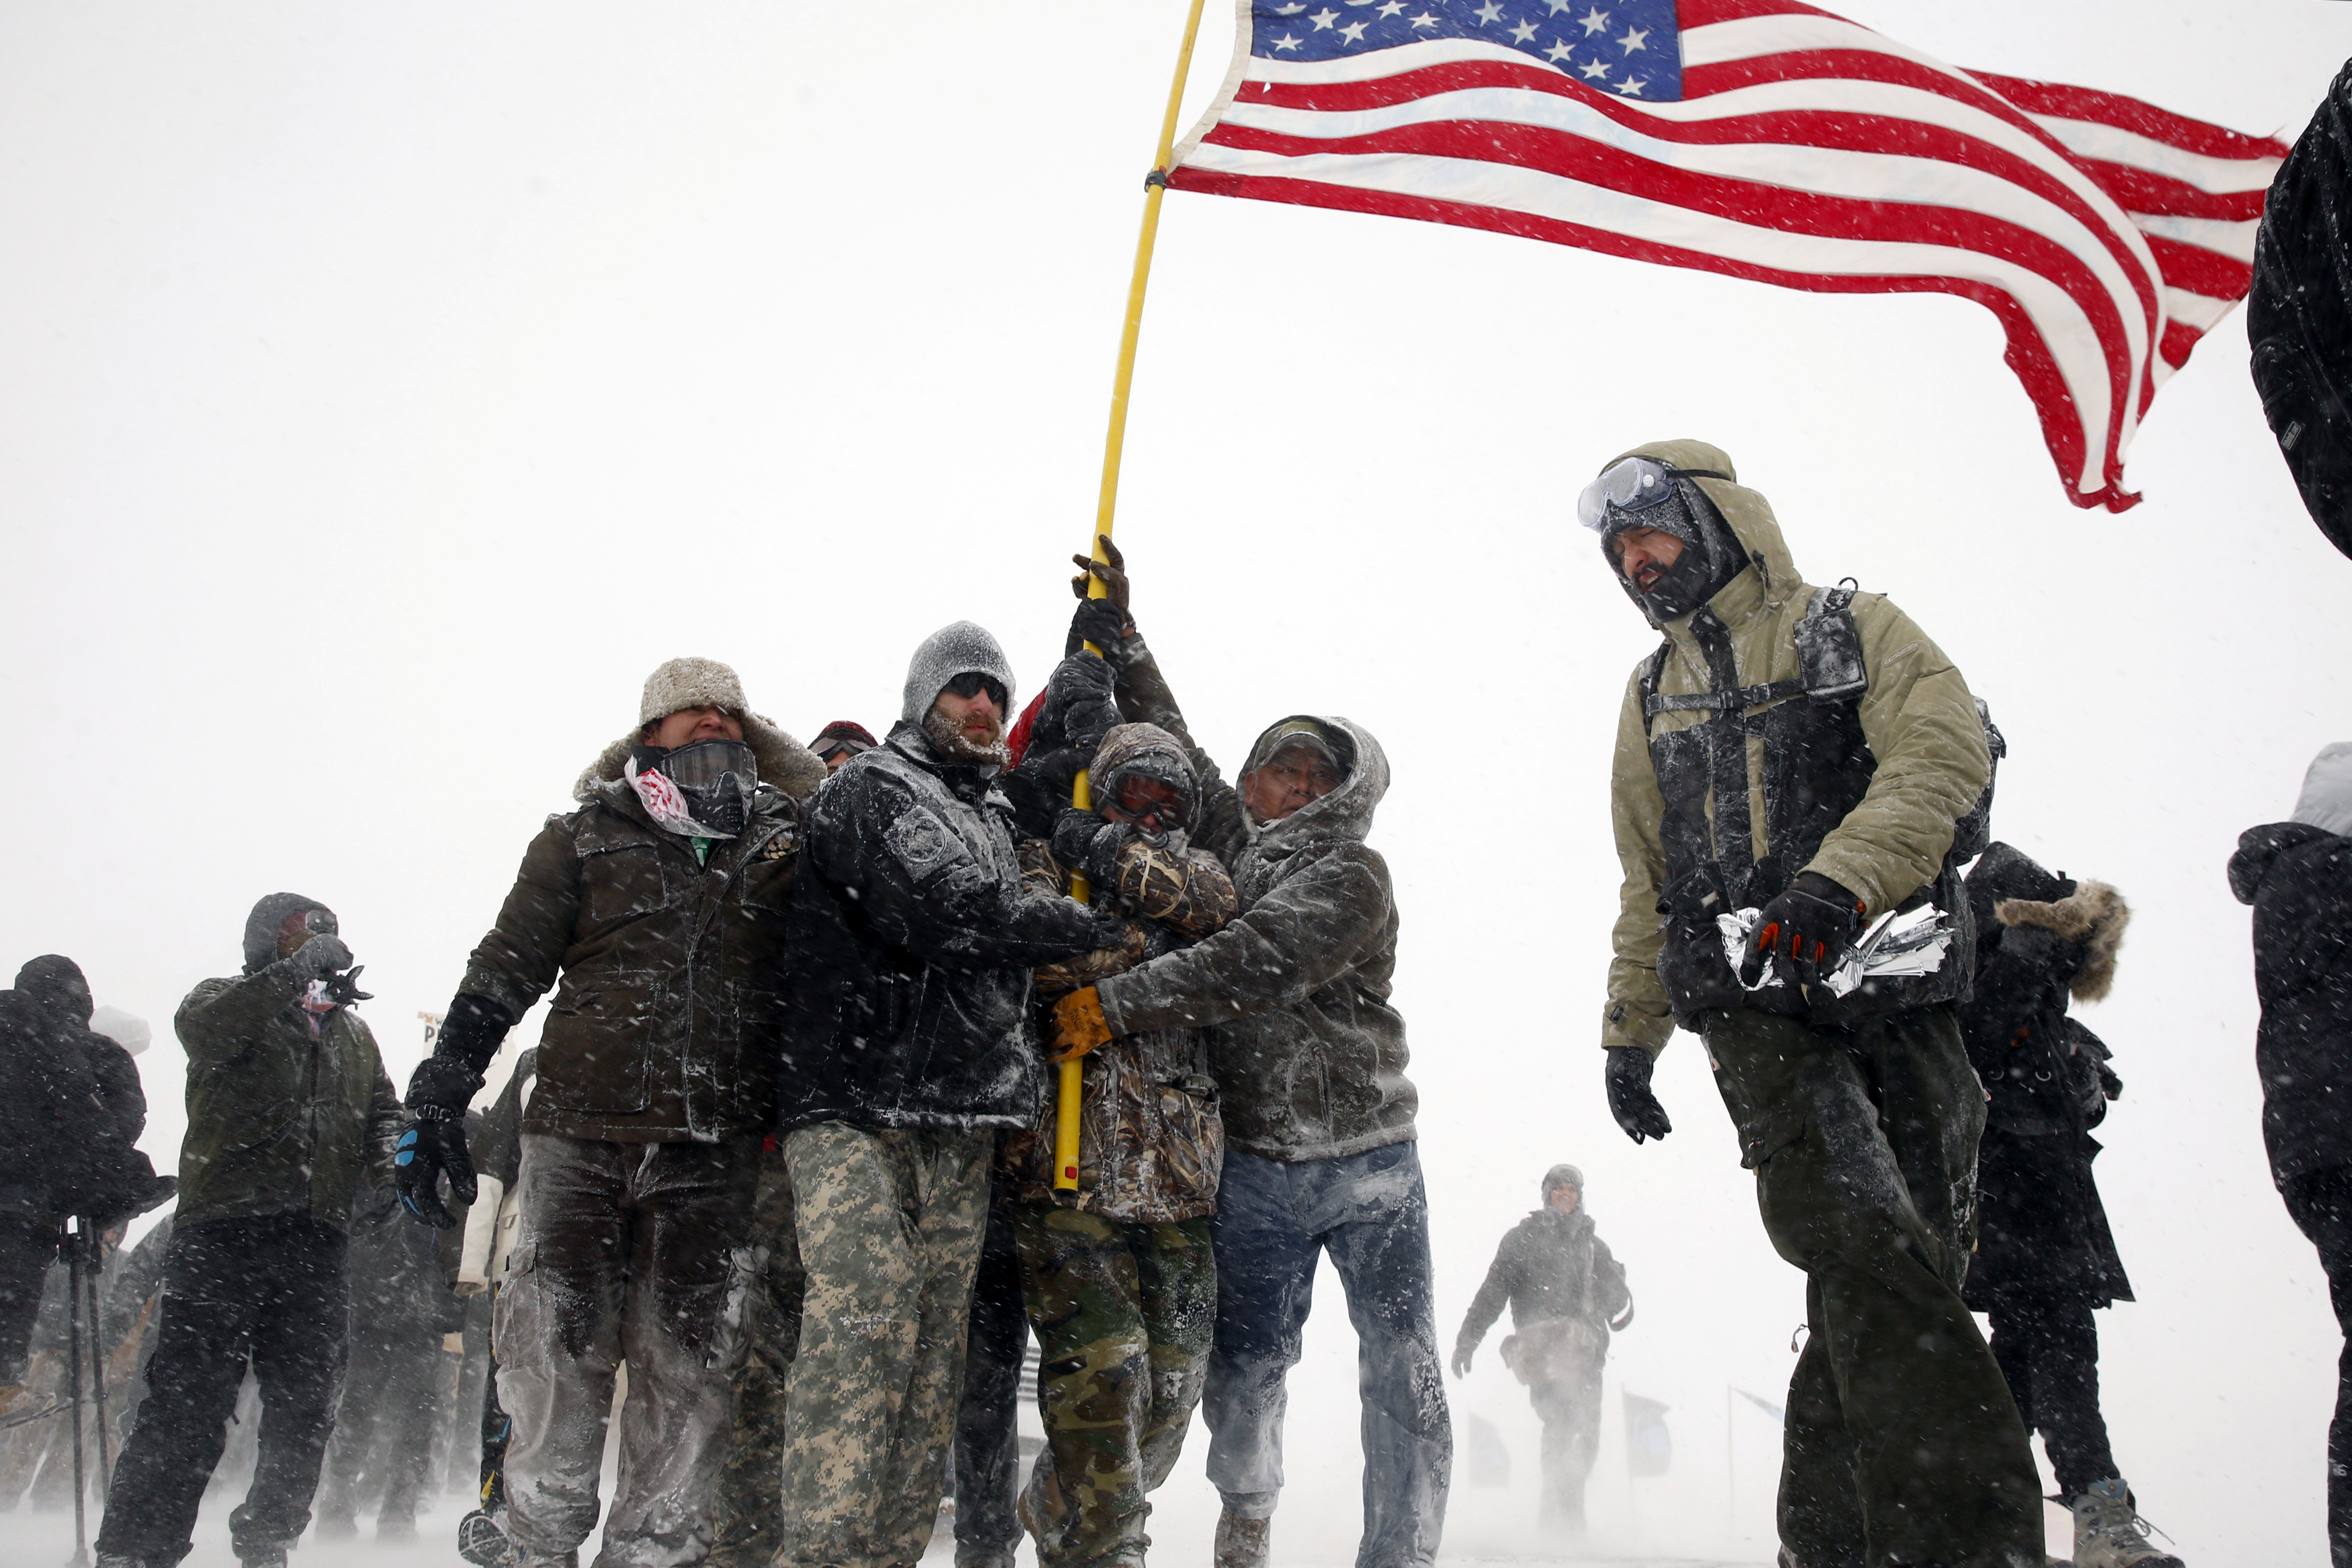 Veterans join activists in a march to Backwater Bridge just outside of the Oceti Sakowin camp in North Dakota